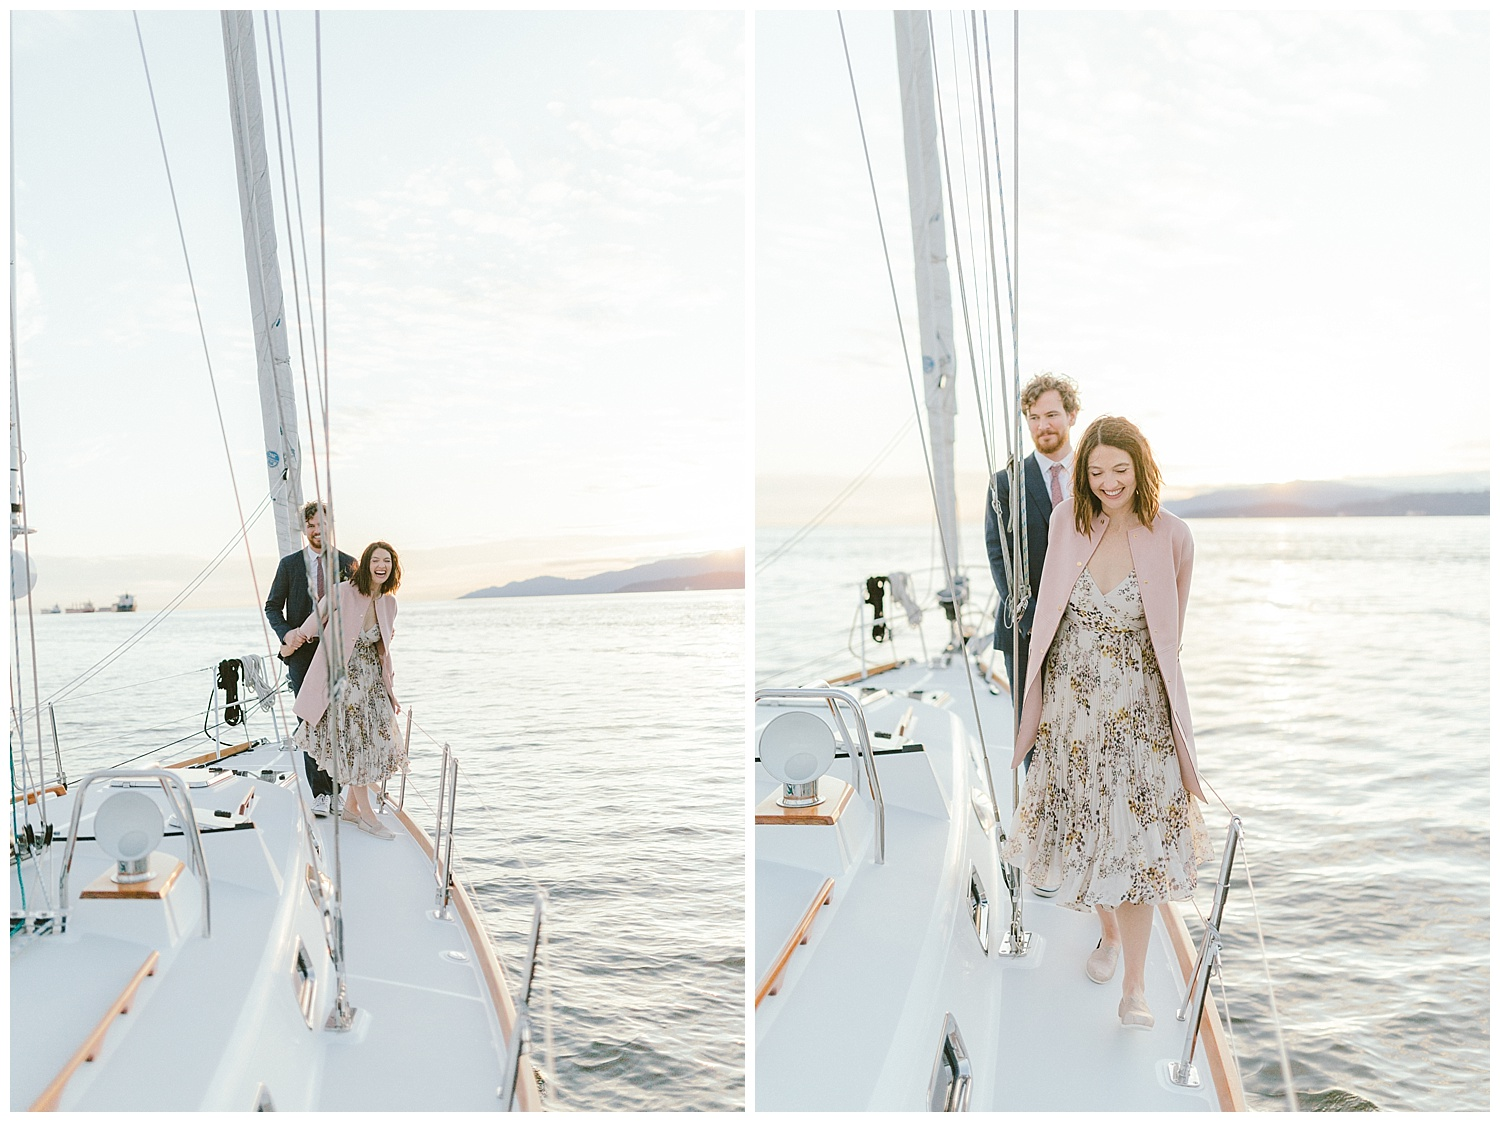 Hong Kong Vancouver fine art prewedding wedding photography photographer Mattie C.00055.jpg